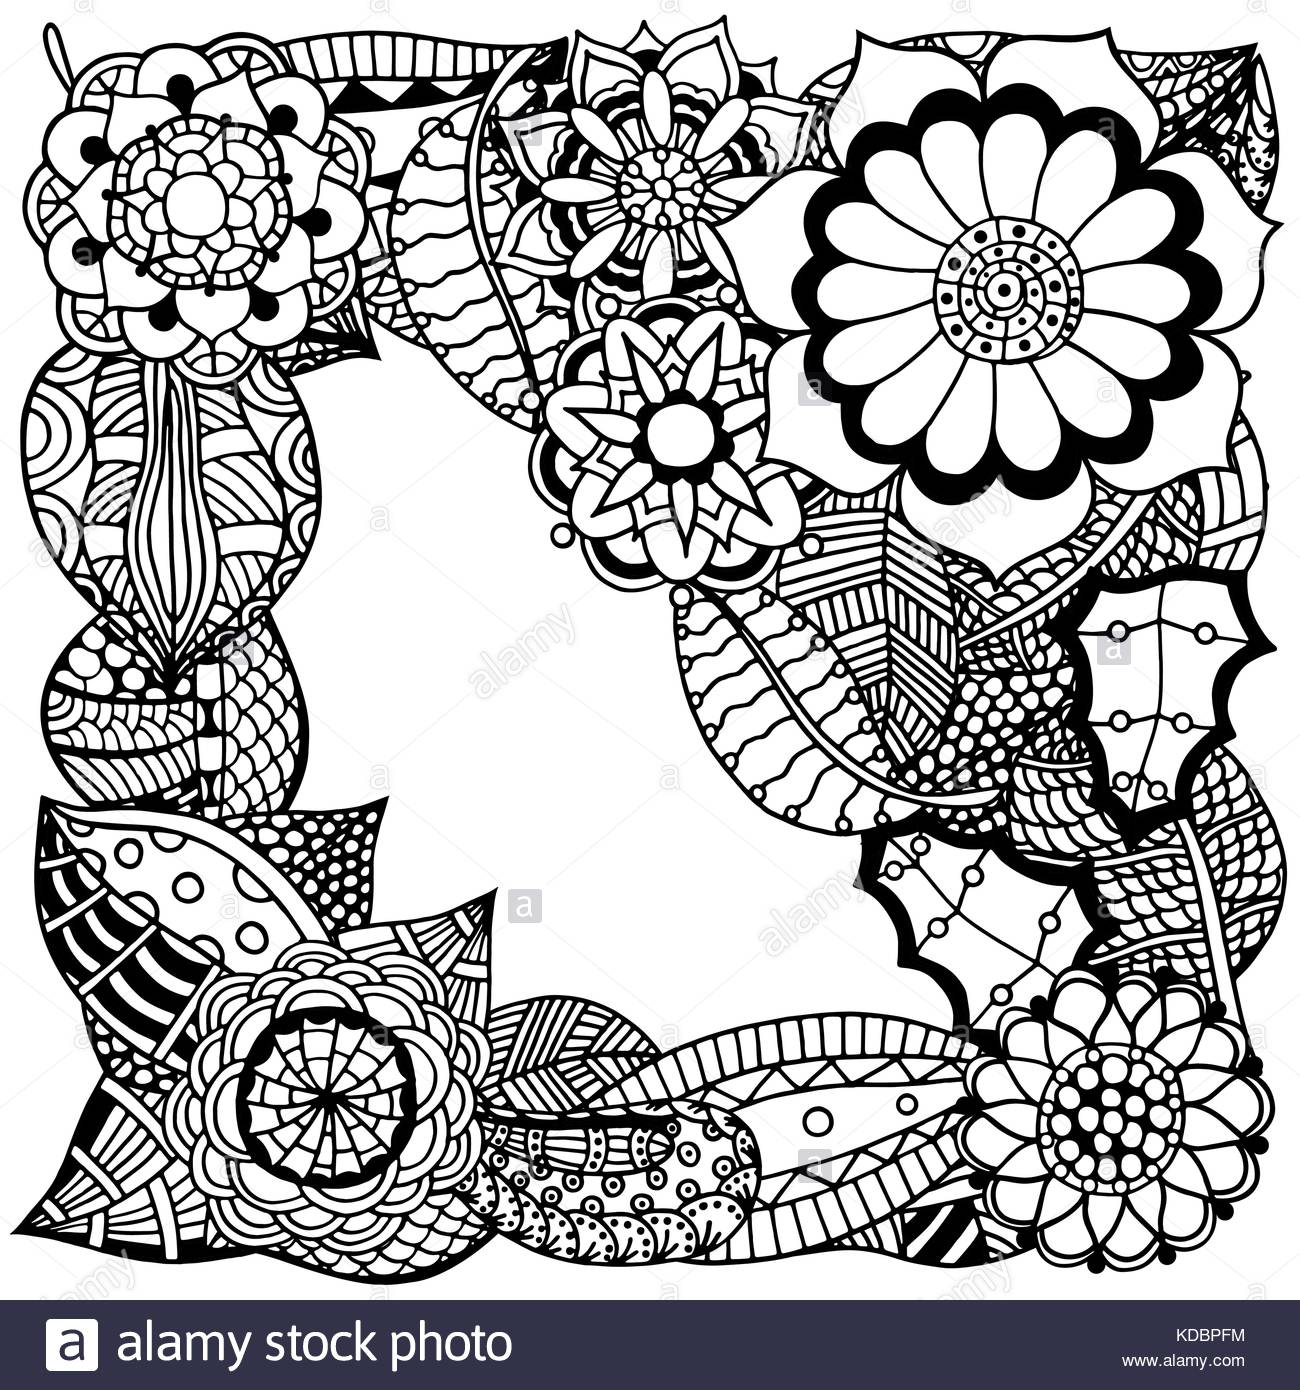 Ornate floral pattern with flowers Doodle sharpie floral 1300x1390